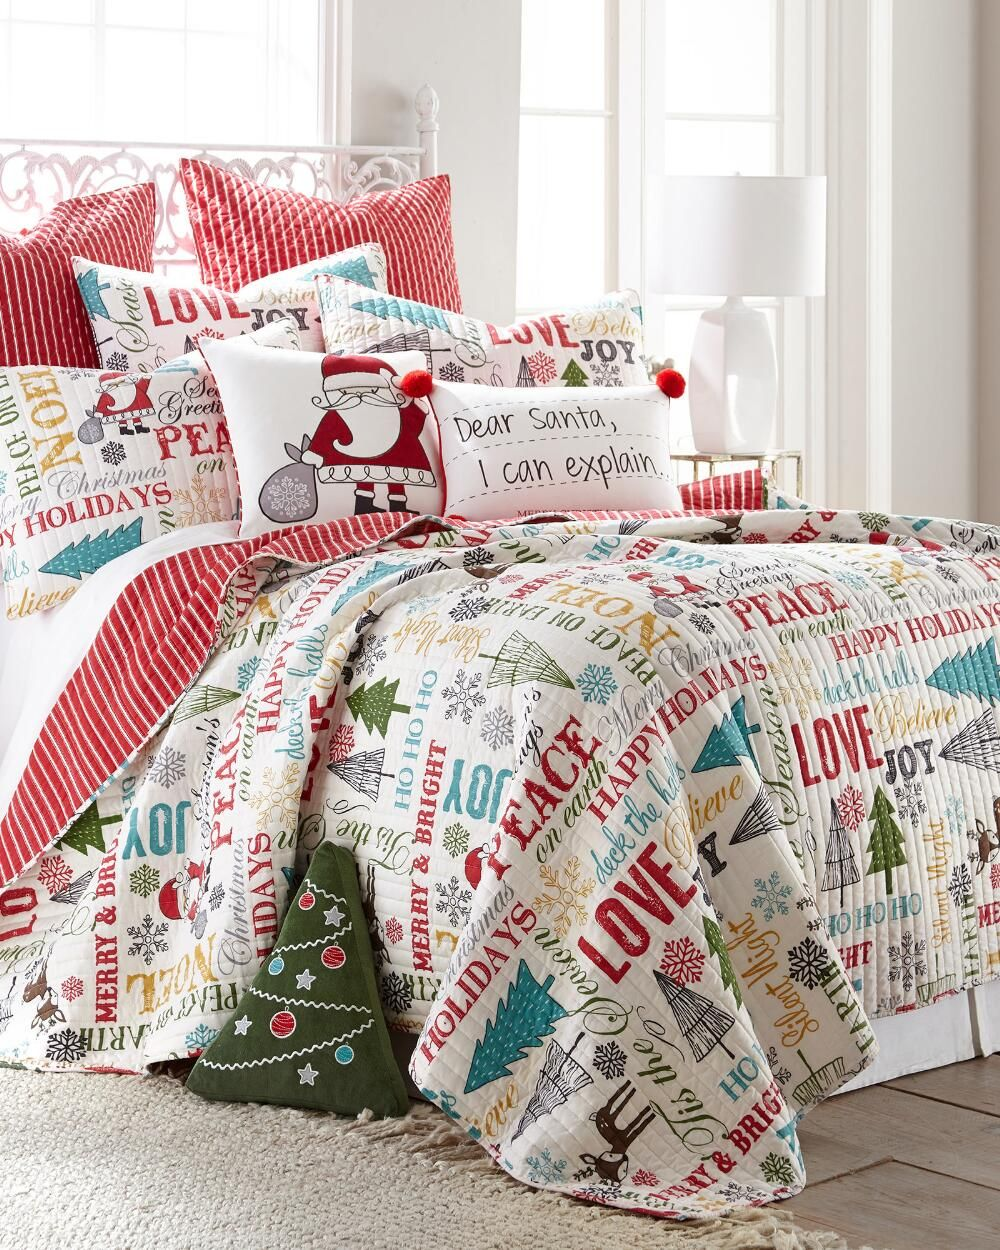 Holiday Words Luxury Quilt Collection-Quilts-Bedding-Bed & Bath ... : holiday bedding quilts - Adamdwight.com